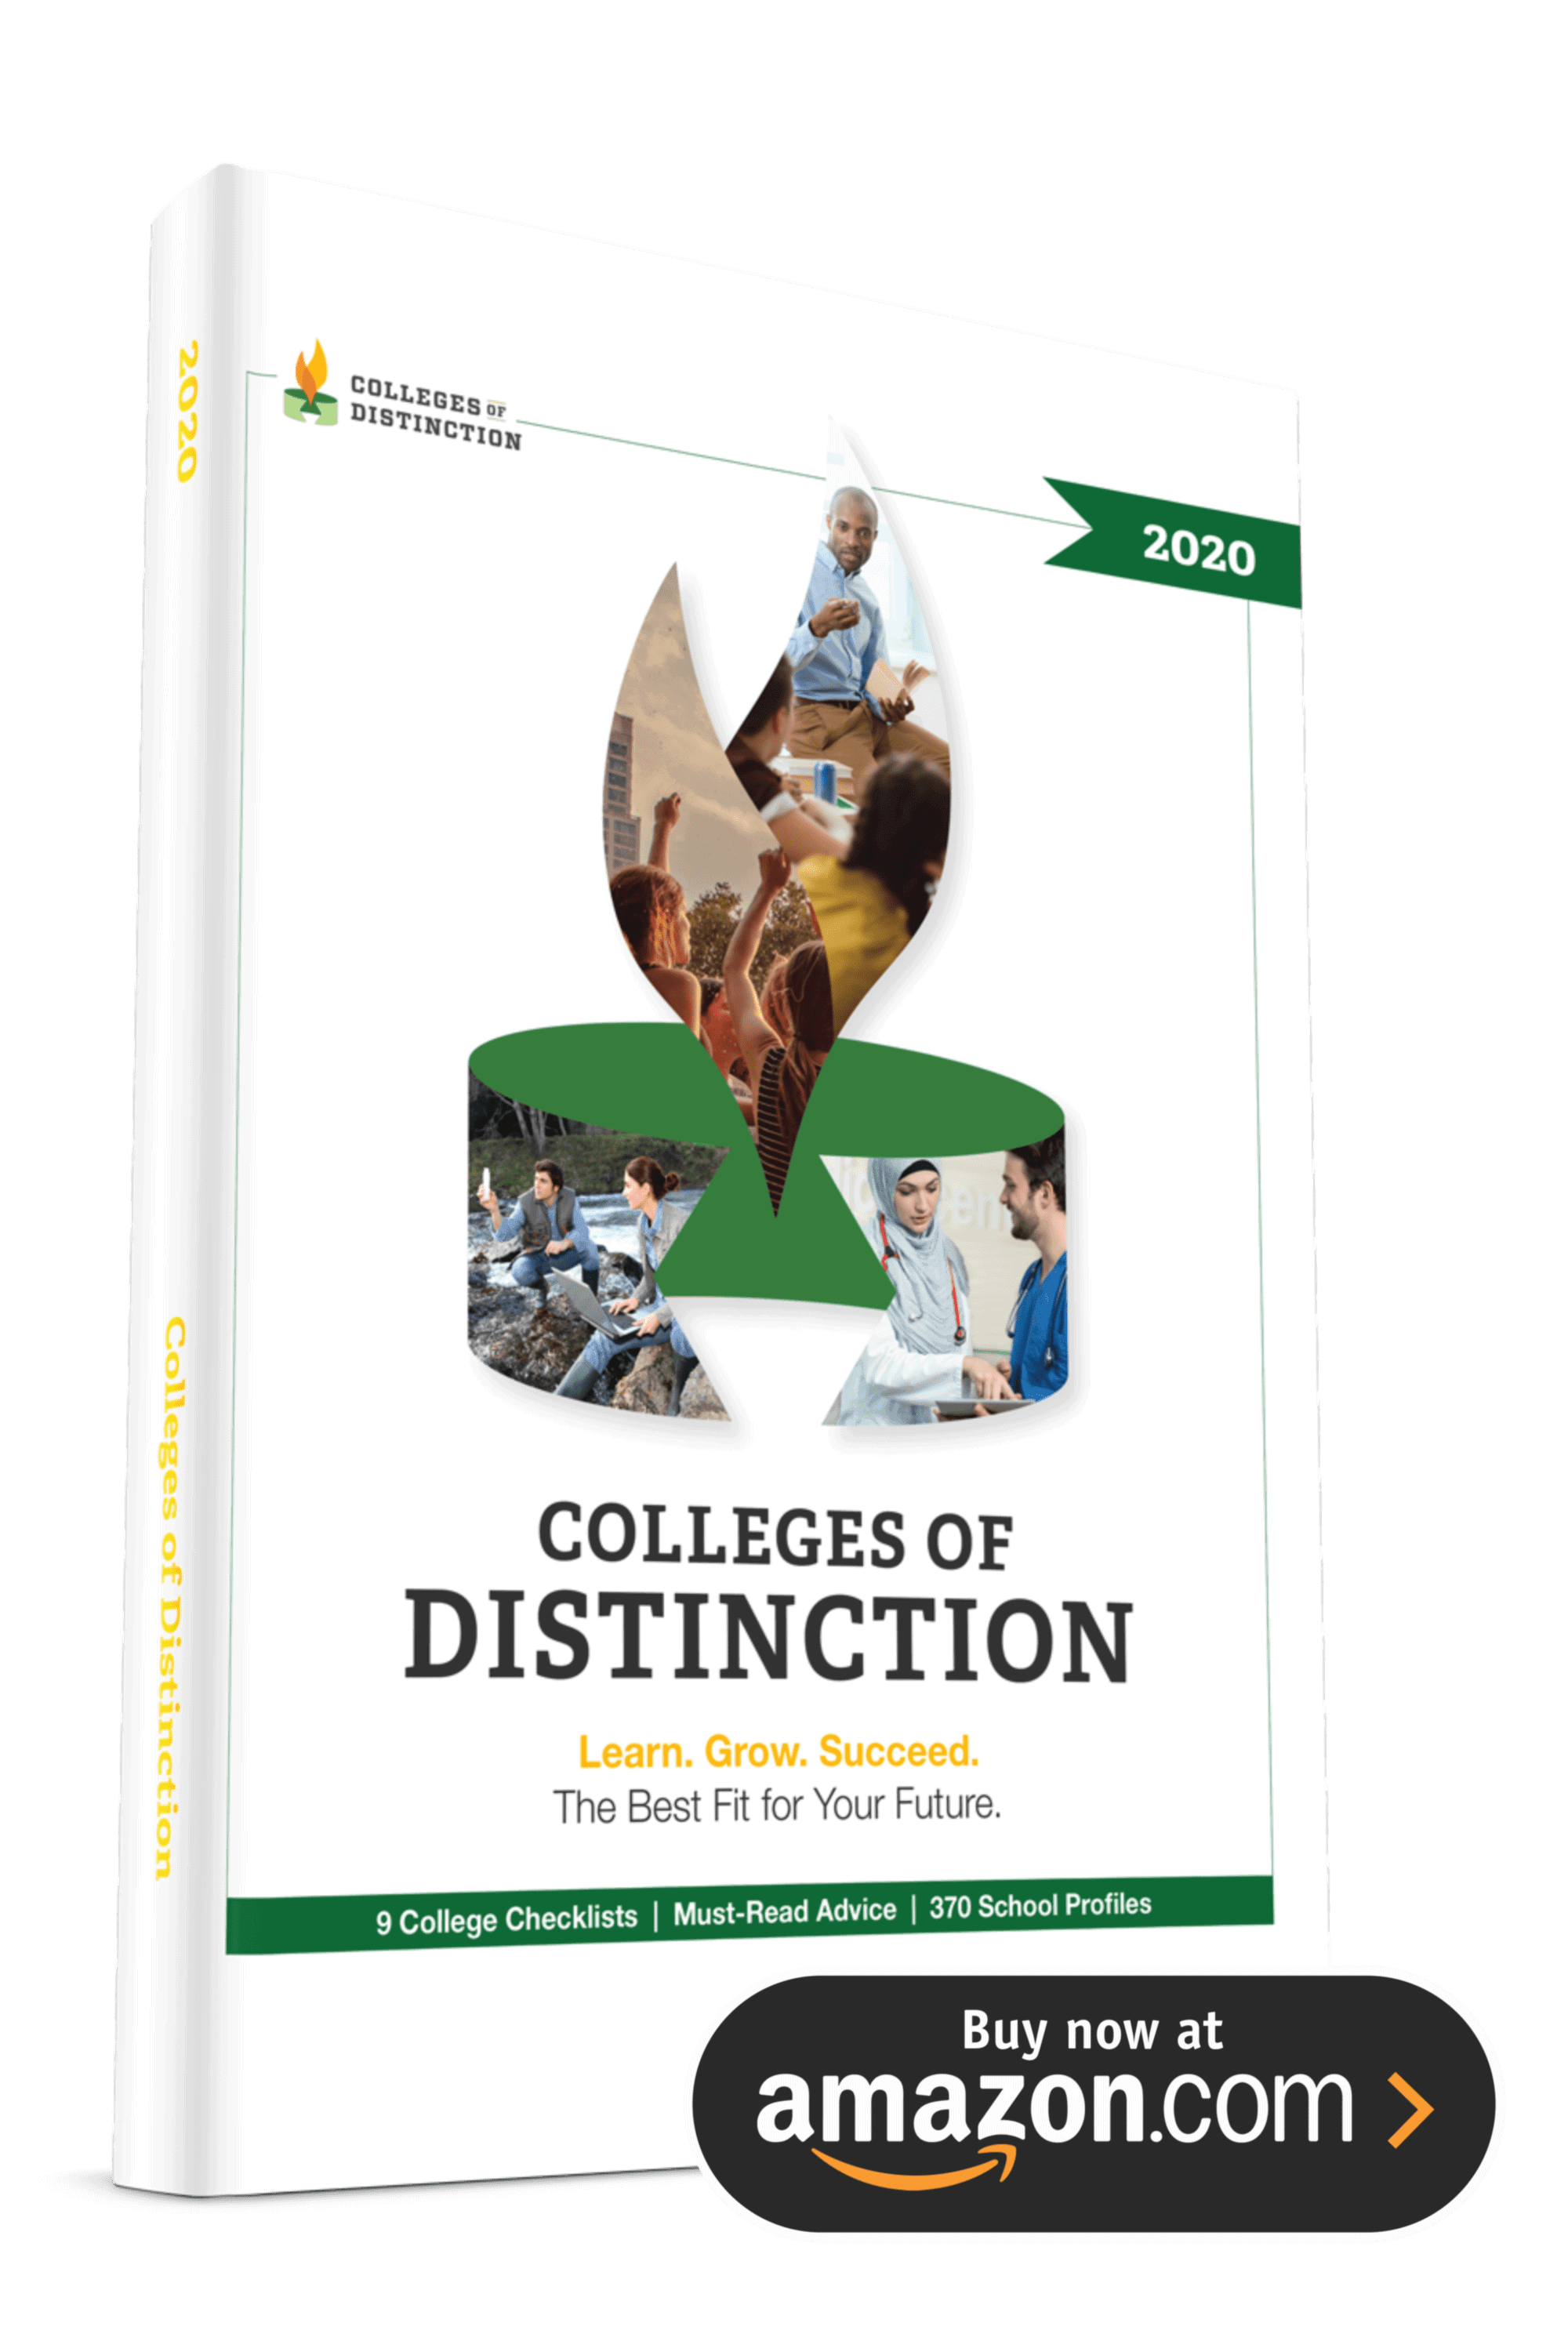 2020 Colleges of Distinction Guidebook: Buy on Amazon